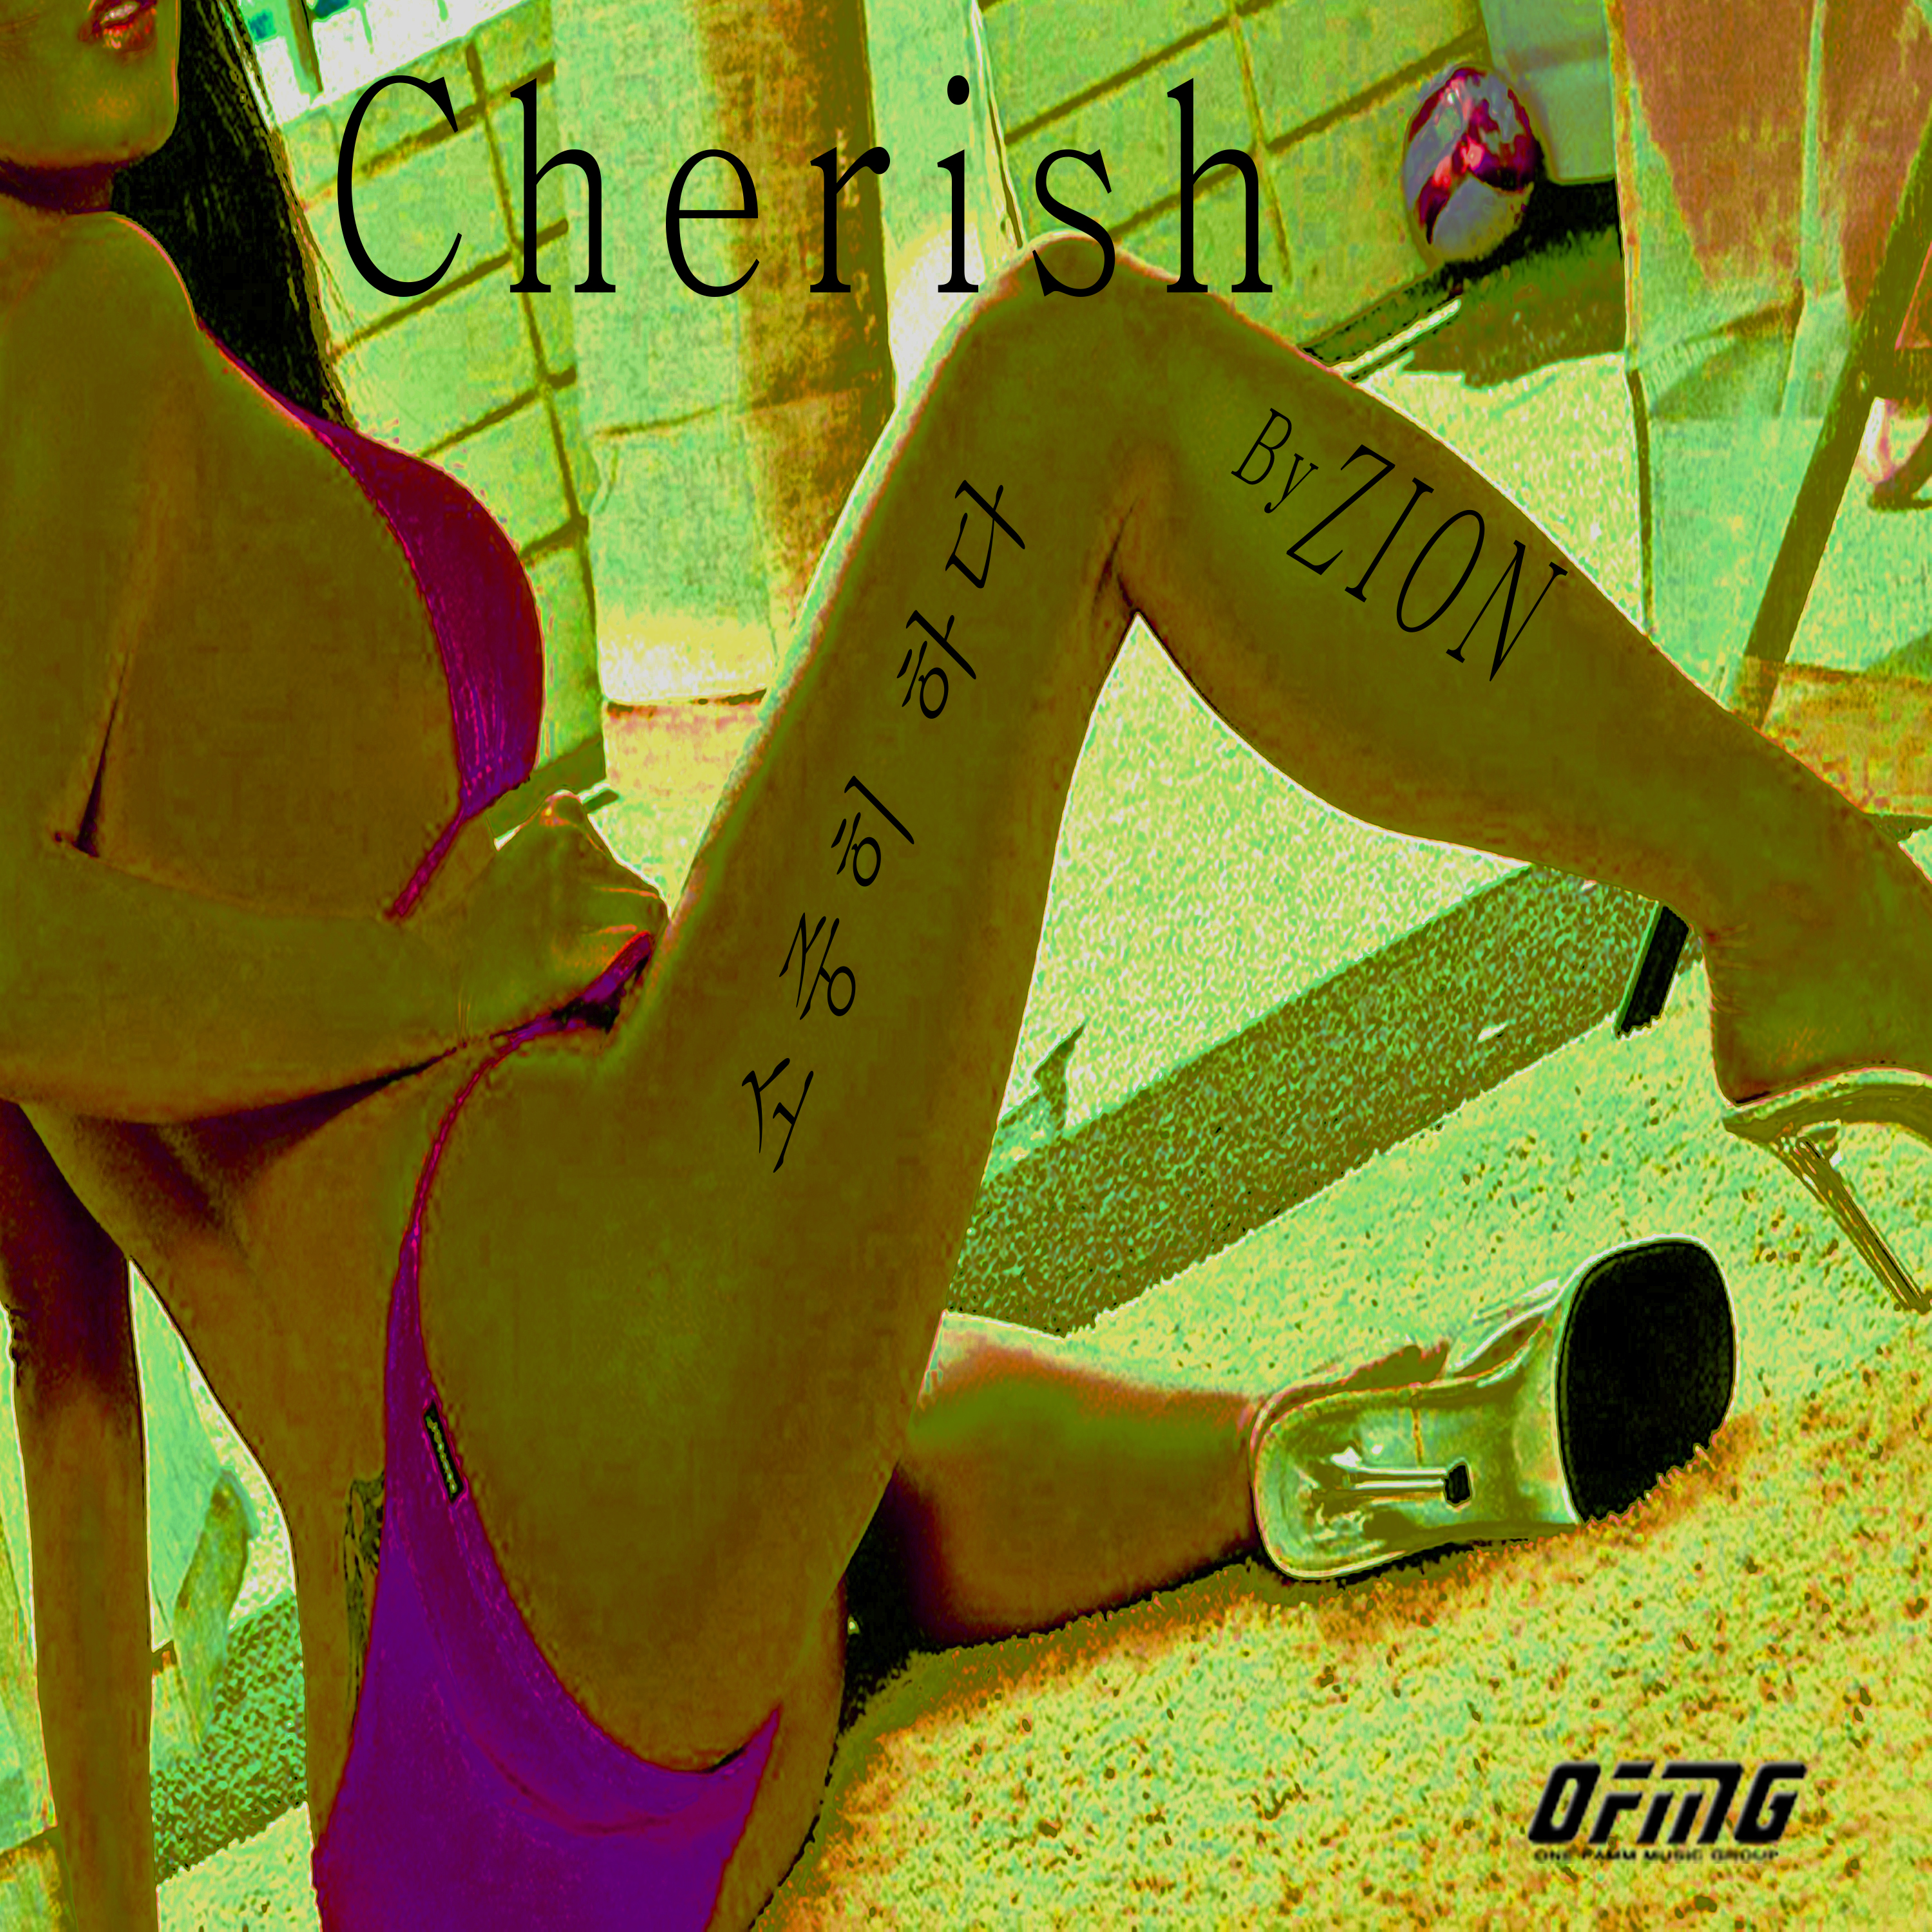 Cherish Single Cover Artwork